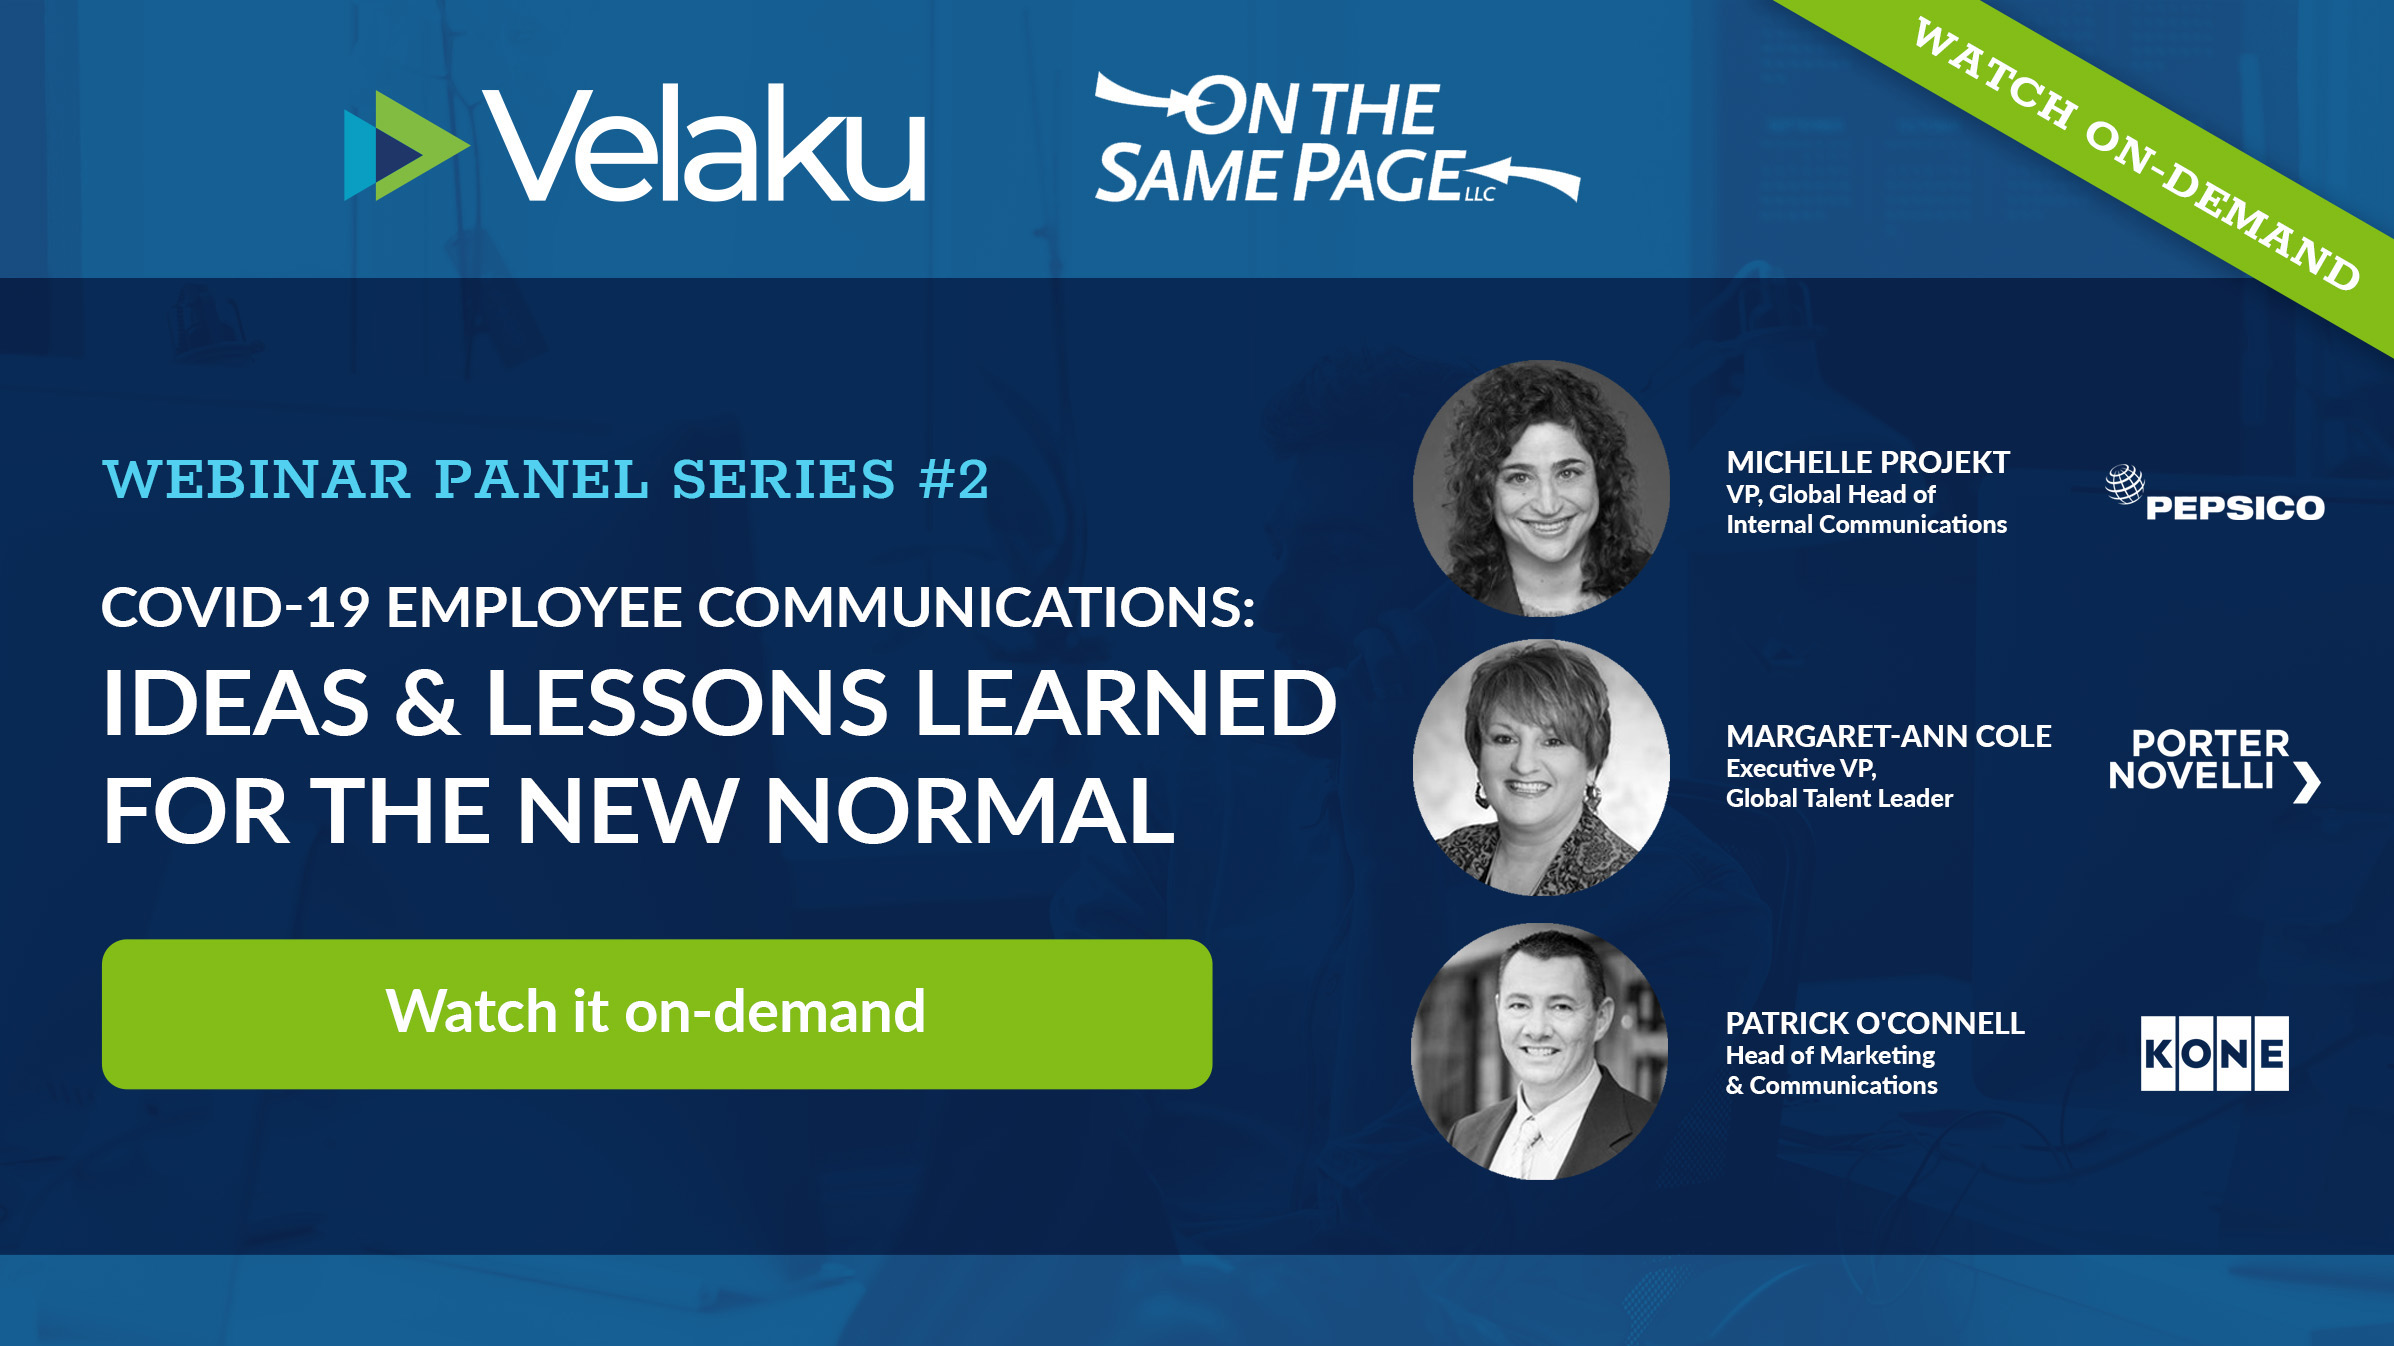 Webinar #2 Ideas and Lessons Learned for the New Normal